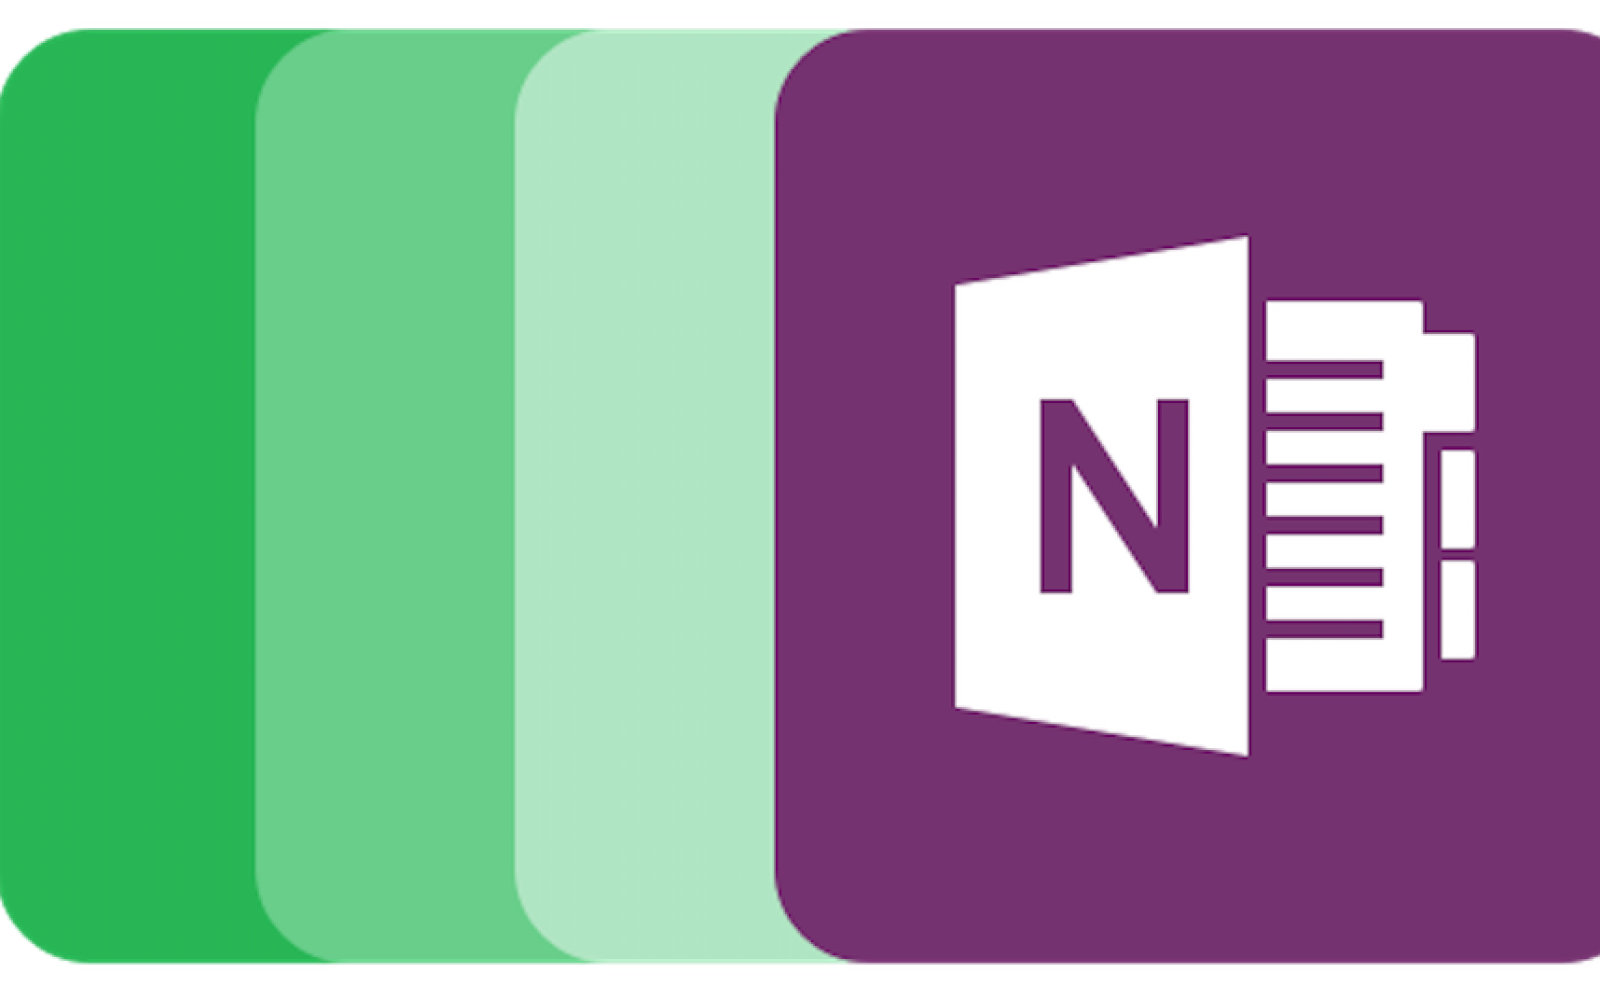 Microsoft updates Office suite of apps with 64-bit support, performance improvements